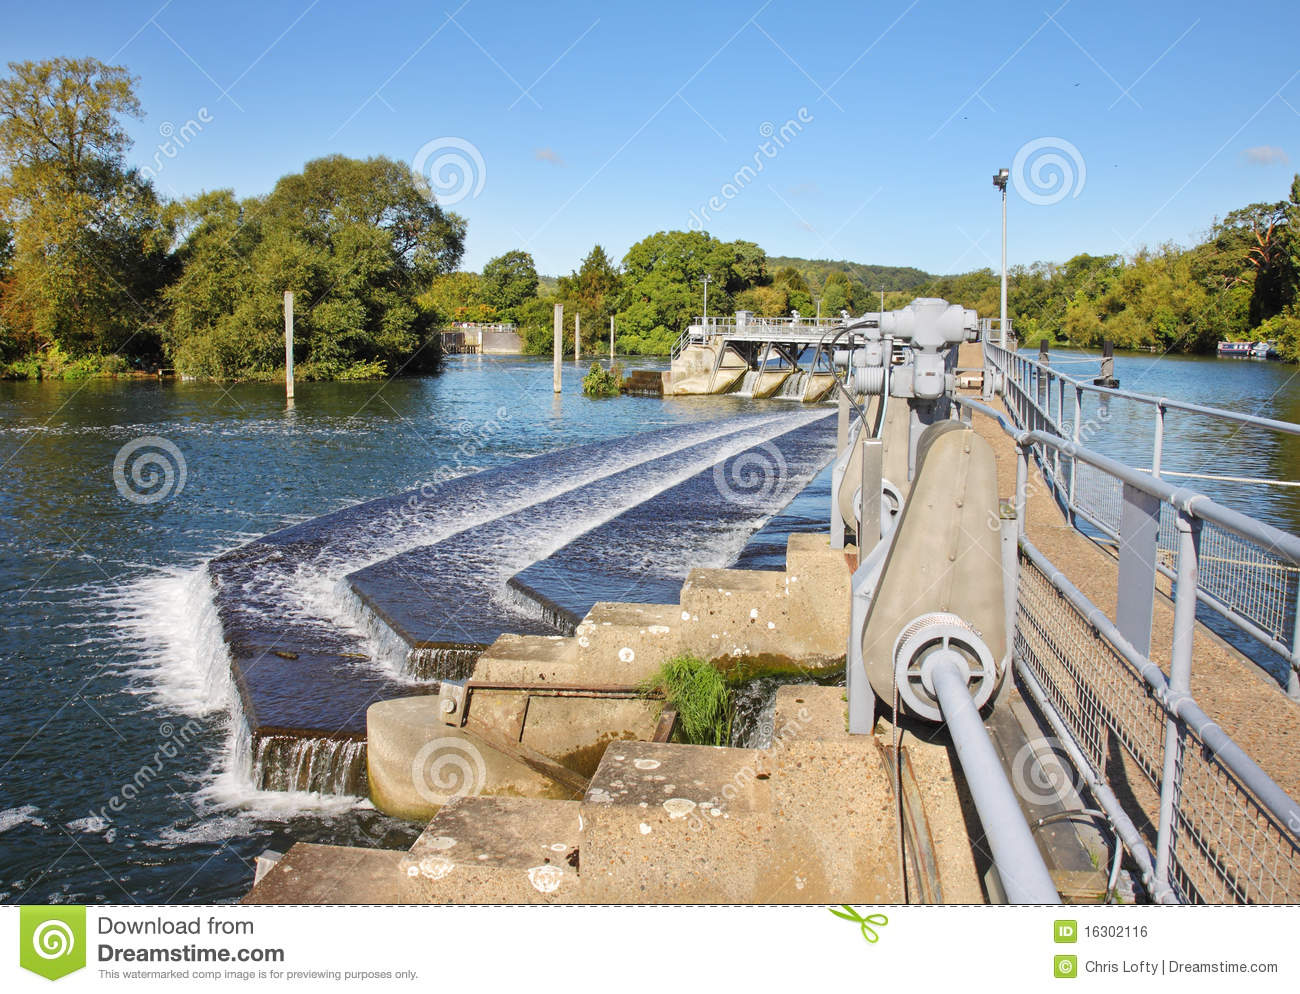 Weir And Sluice Gate On The River Thames Royalty Free Stock Image.